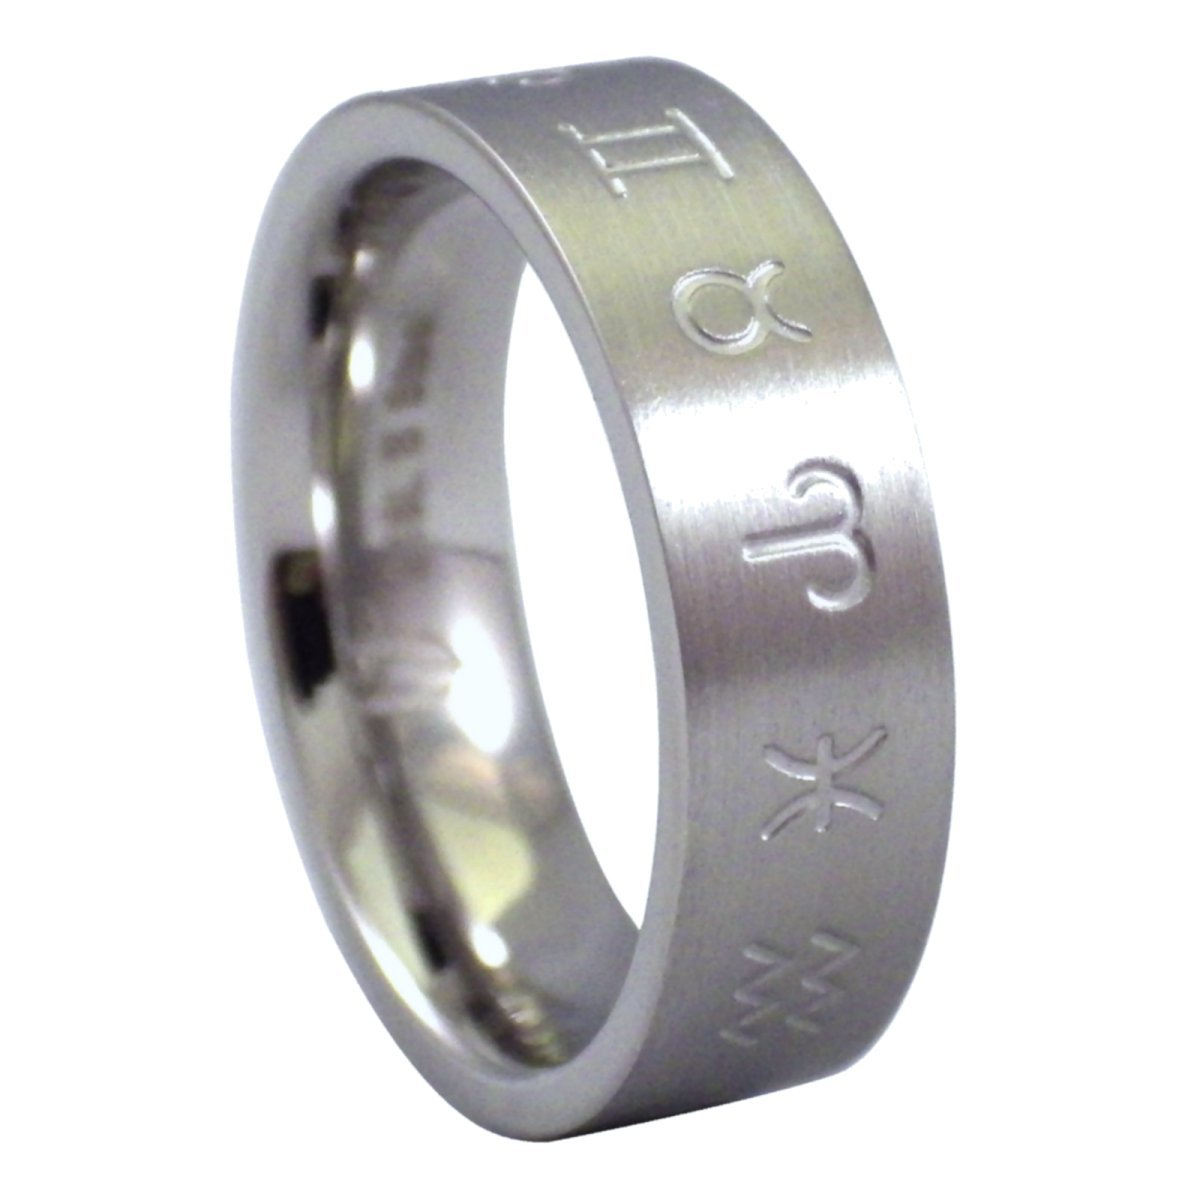 Fantasy Forge Jewelry Wheel of the Zodiac Ring Stainless Steel Band 6mm Size 11